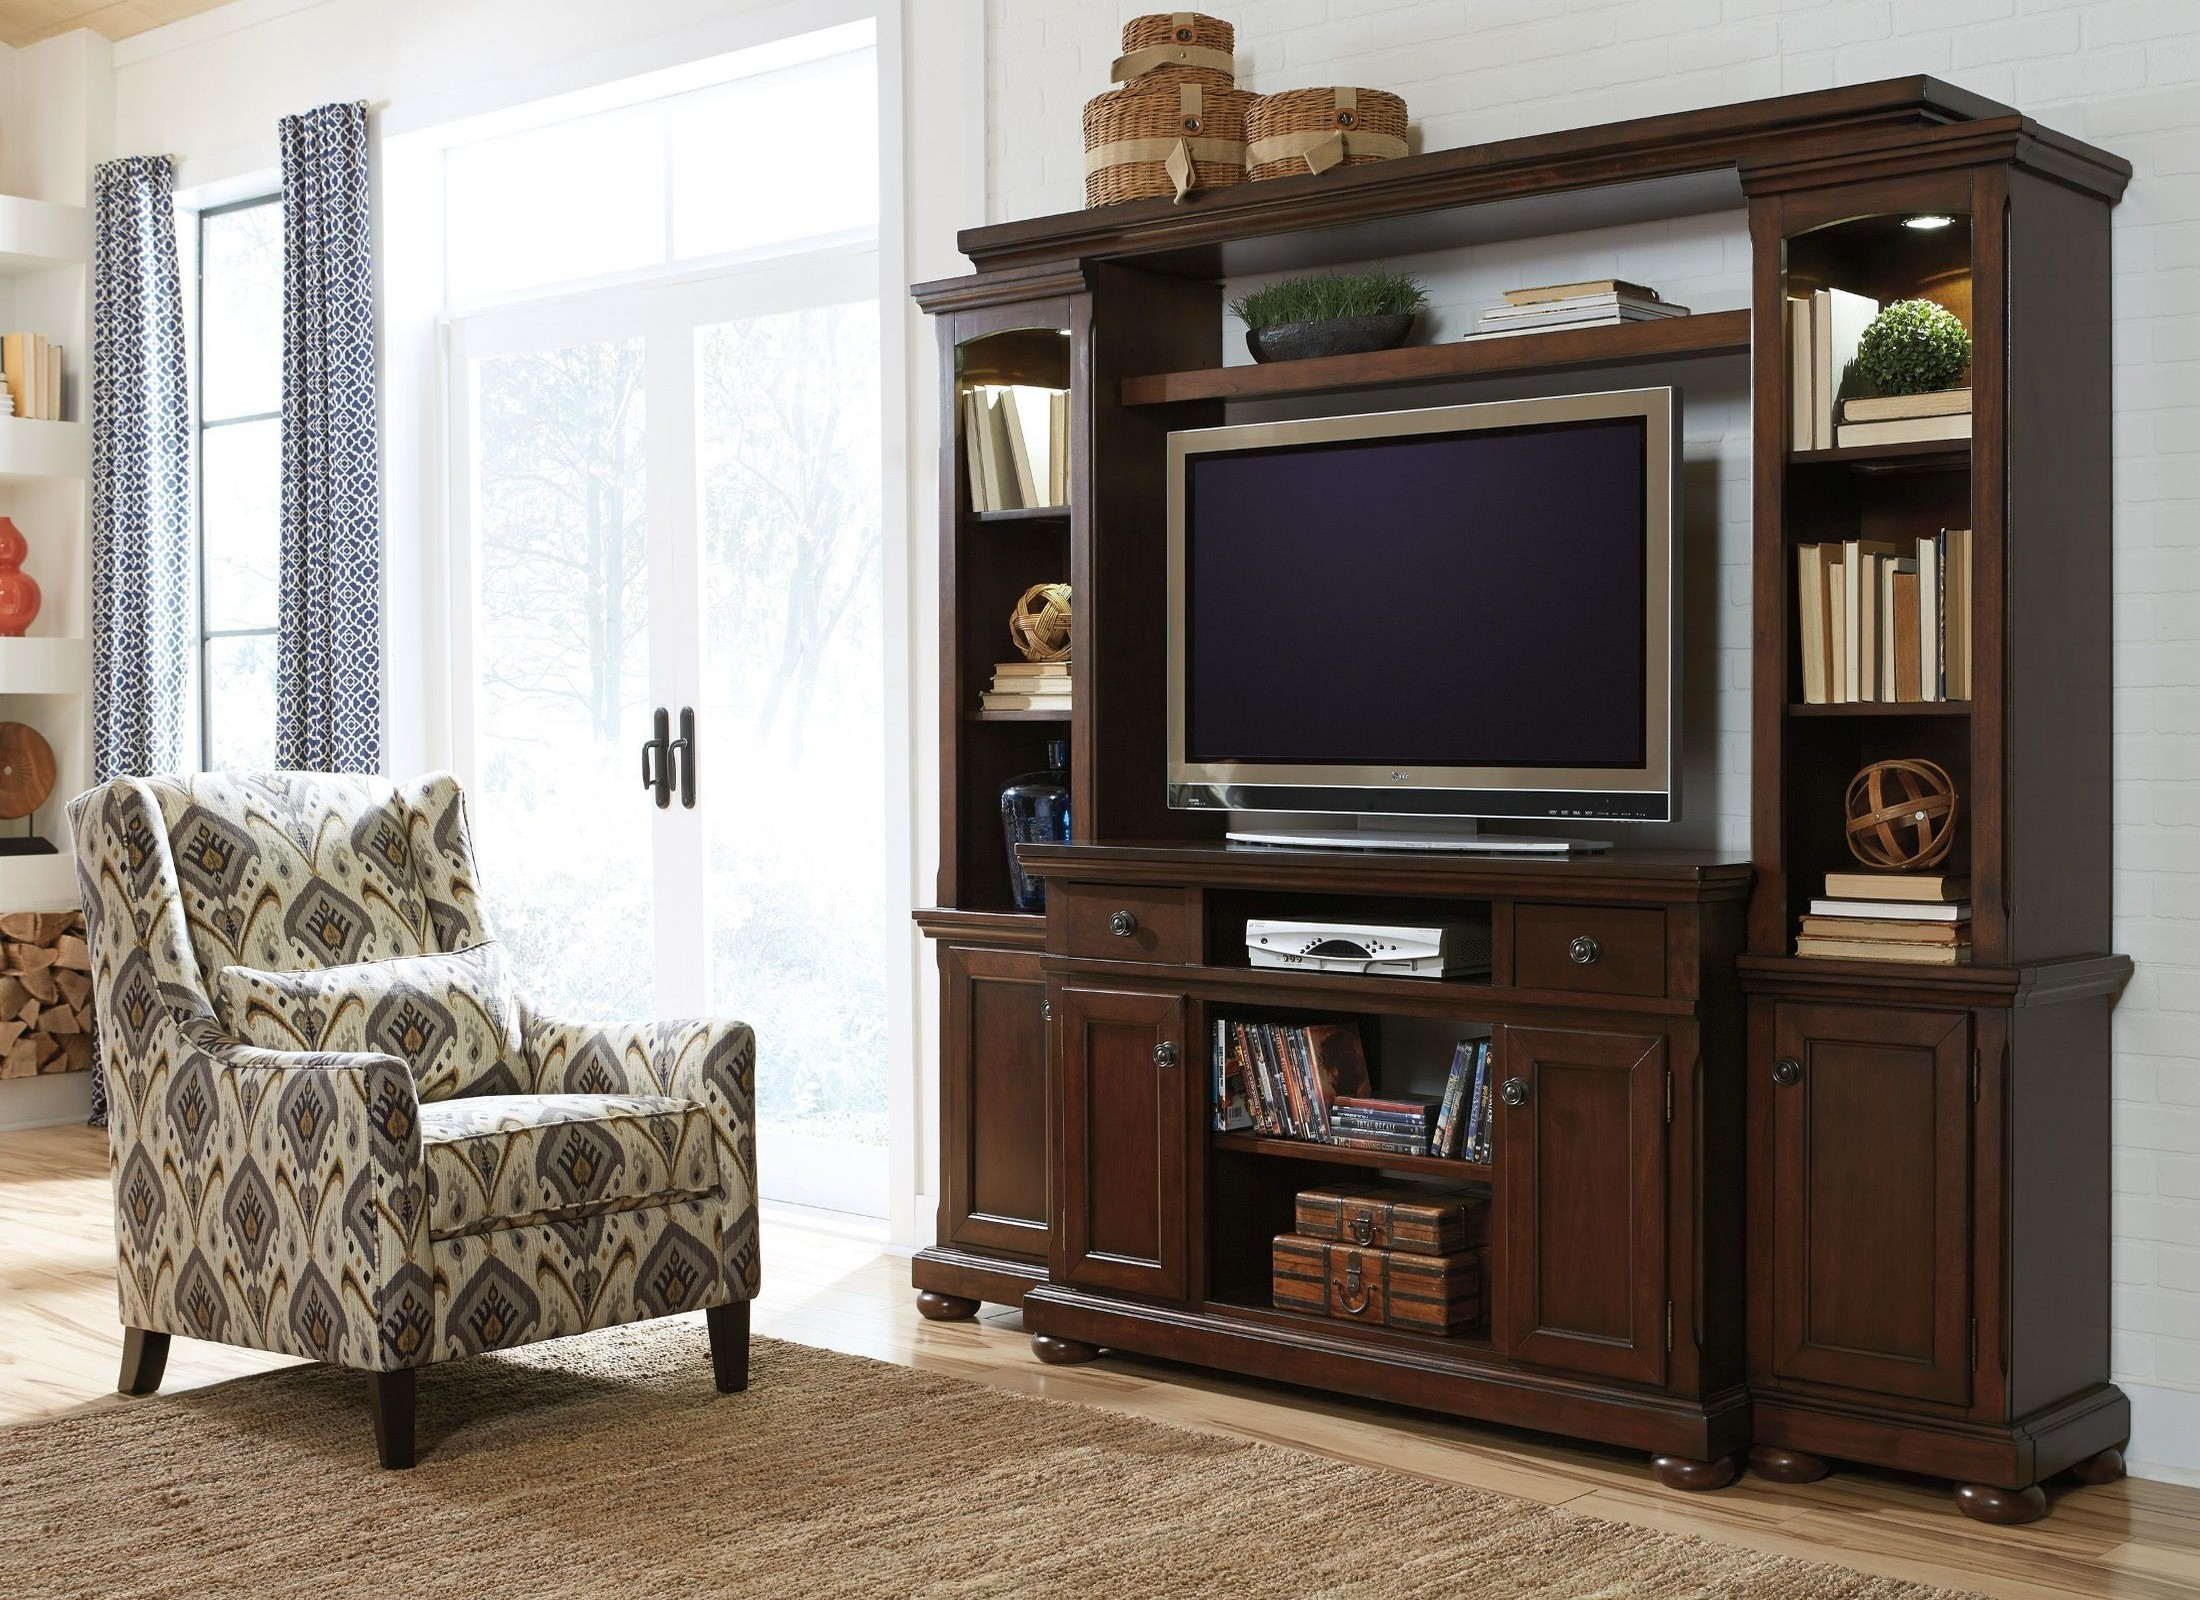 Porter Entertainment Wall Unit From Ashley W697 120 23 24